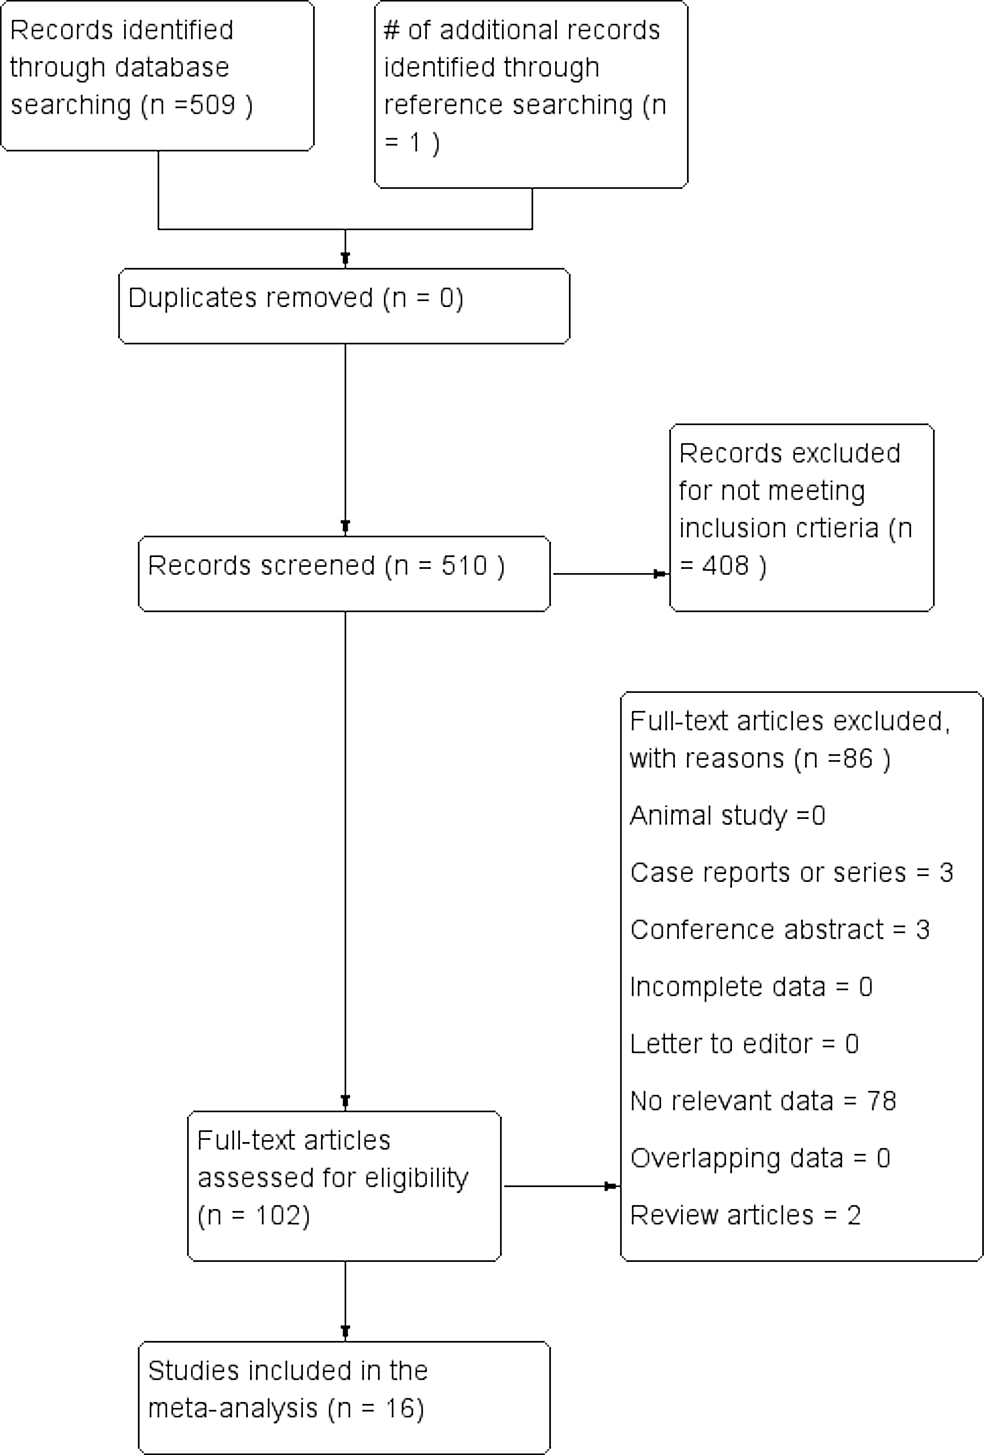 PRISMA-flow-chart-of-the-study-identification-and-inclusion-in-the-meta-analysis